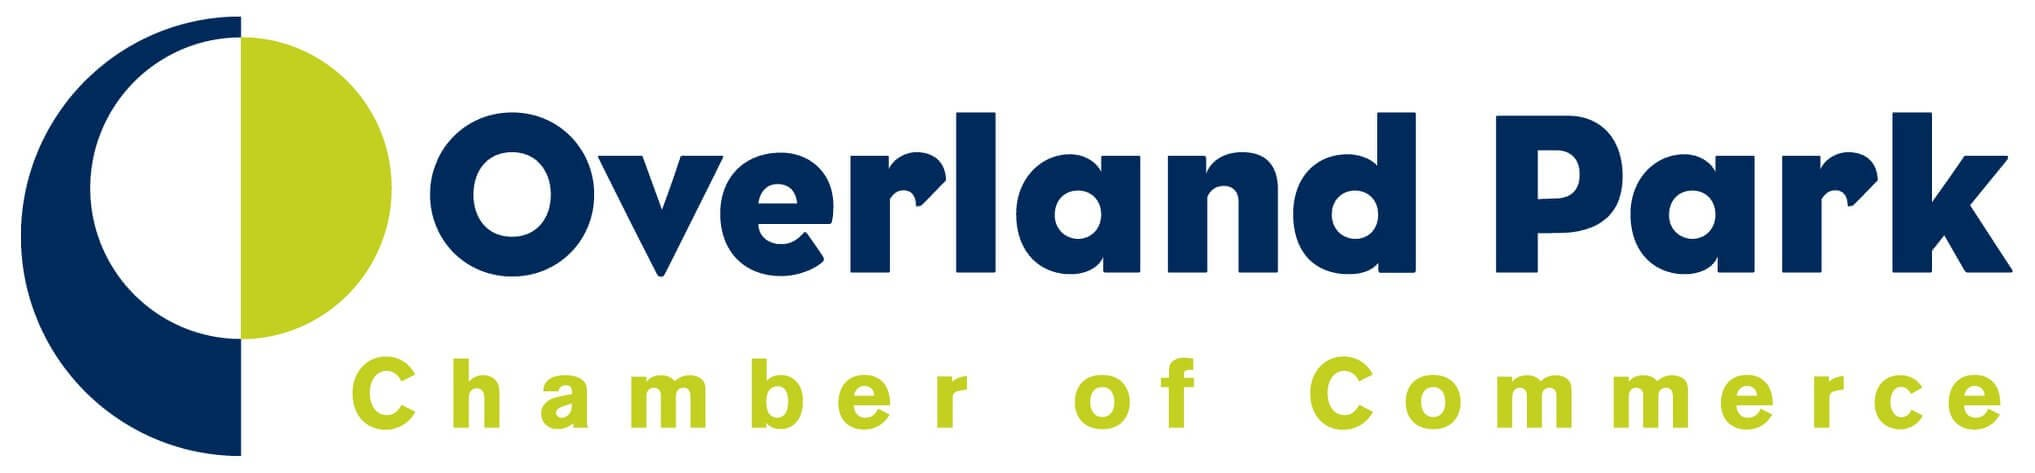 overland park chamber of commerce logo